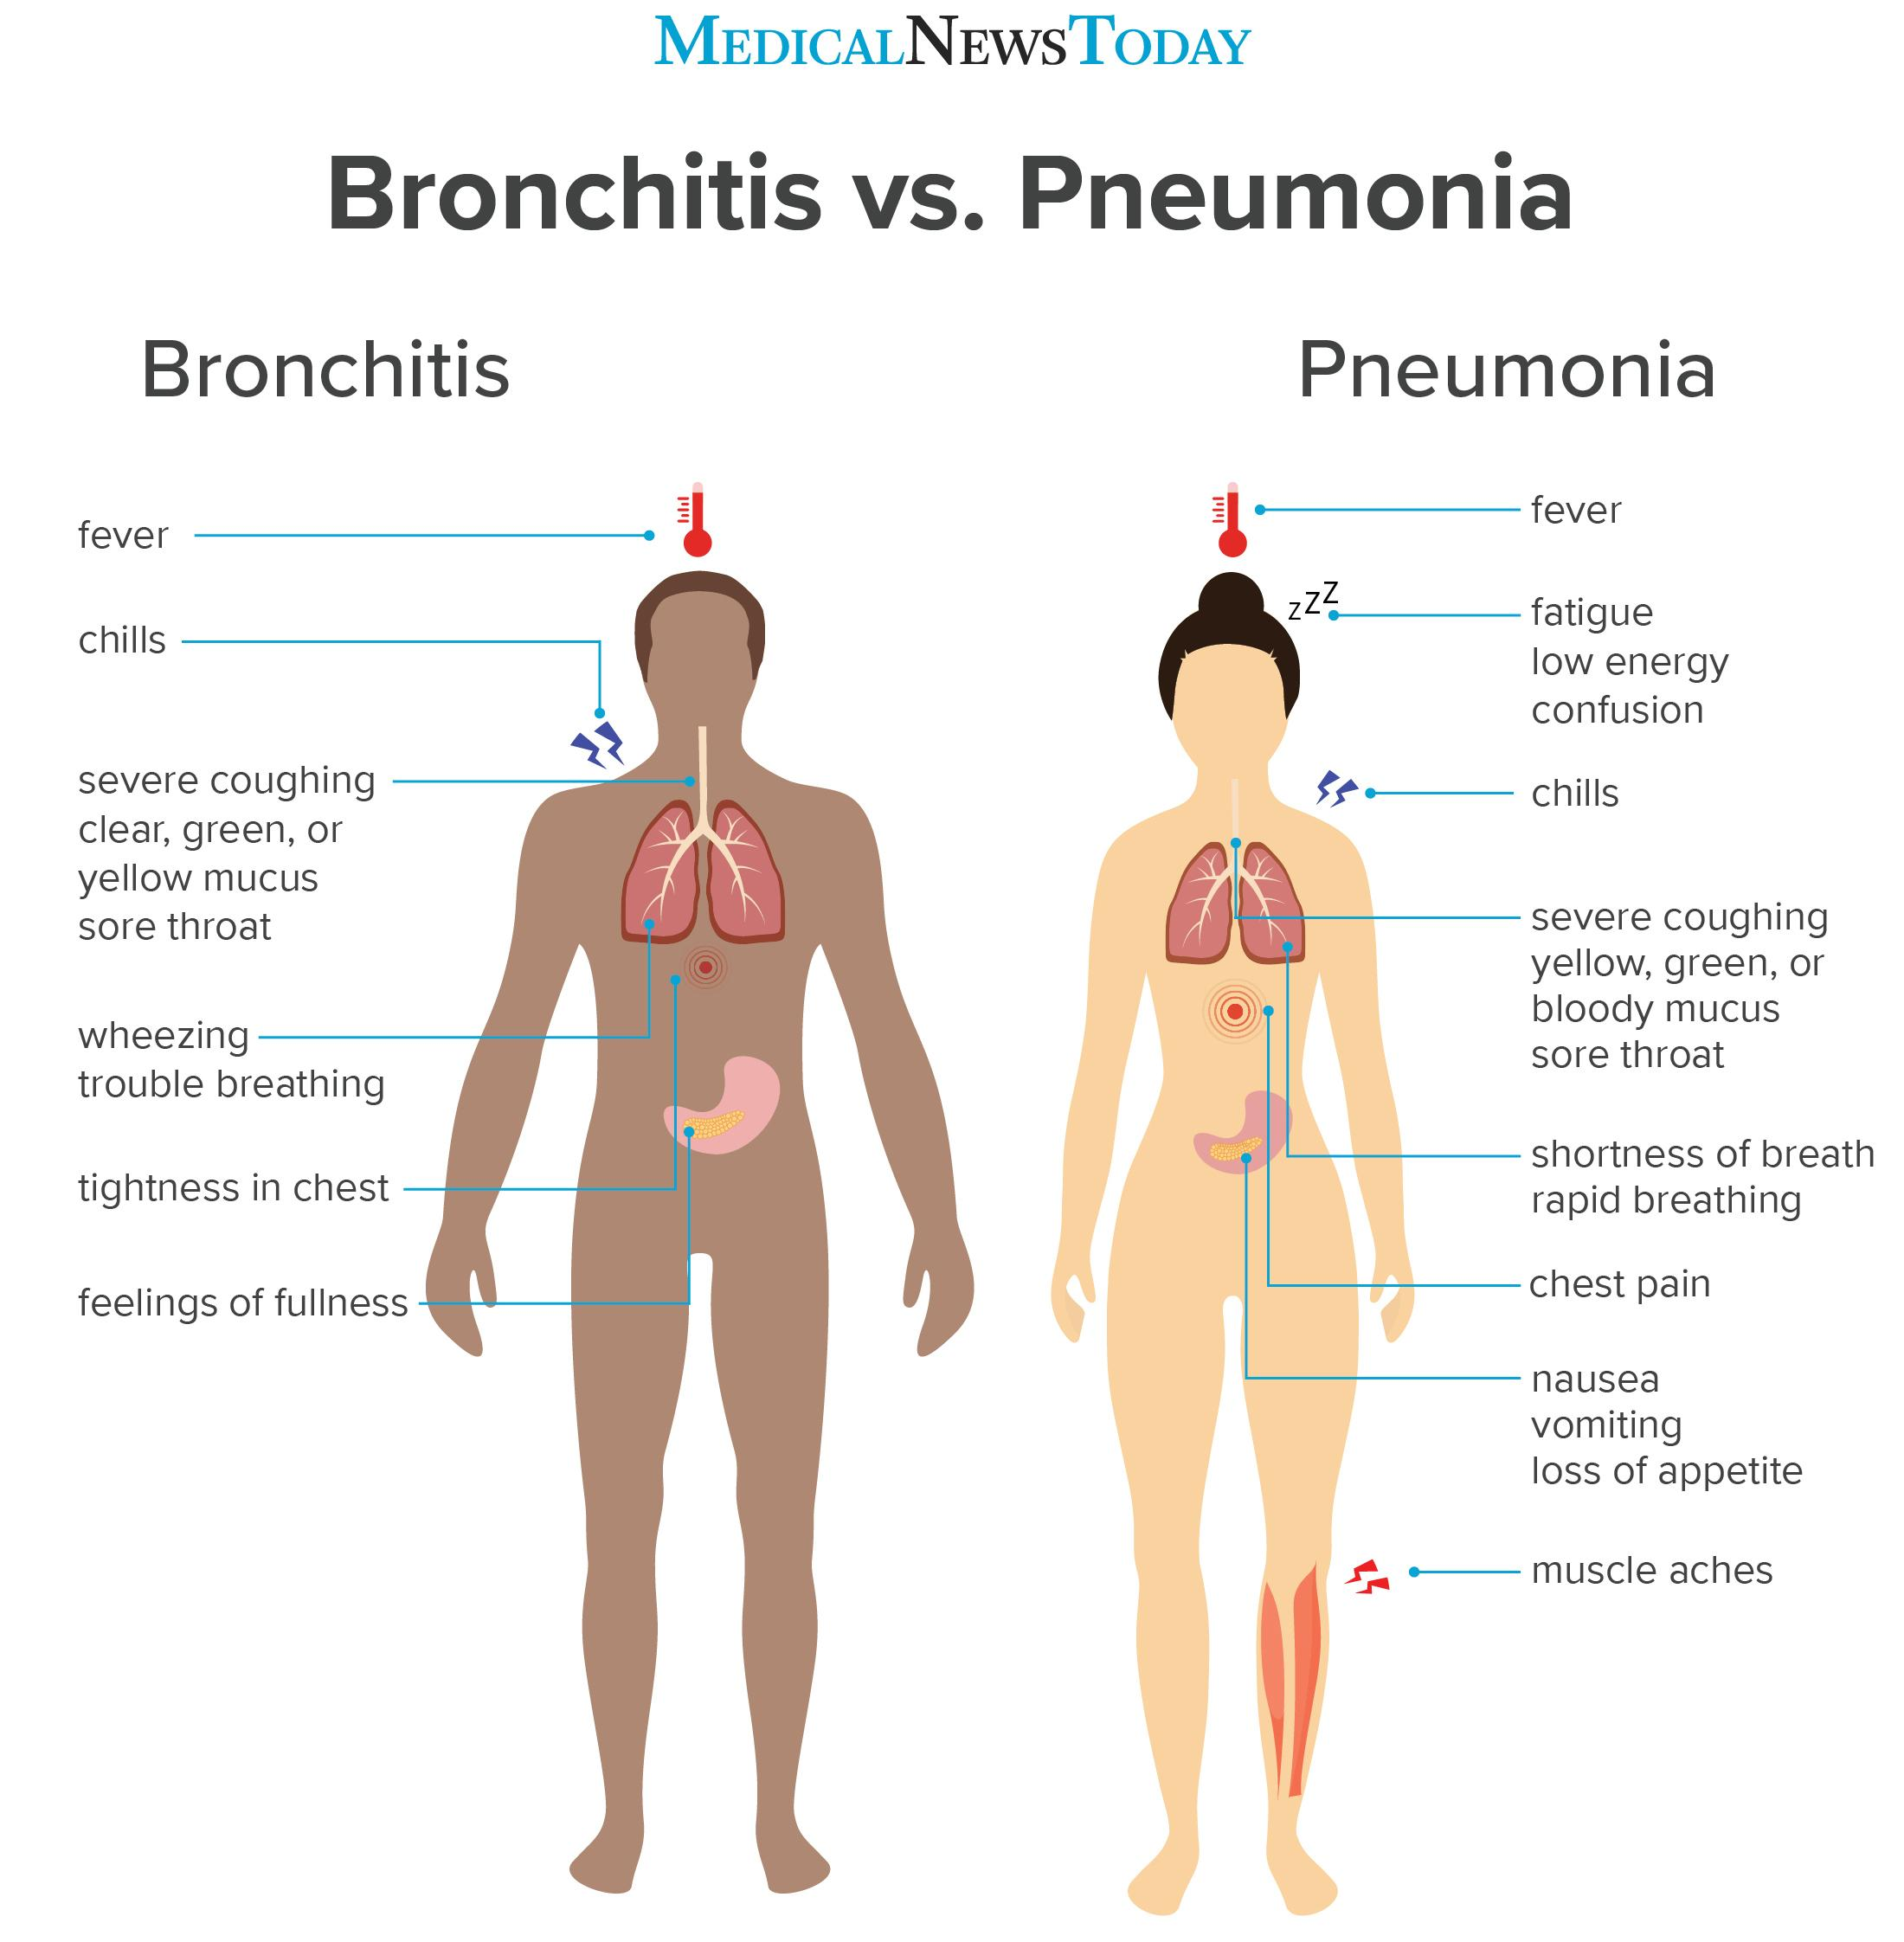 an infographic showing the symptoms of bronchitis vs Pneumonia